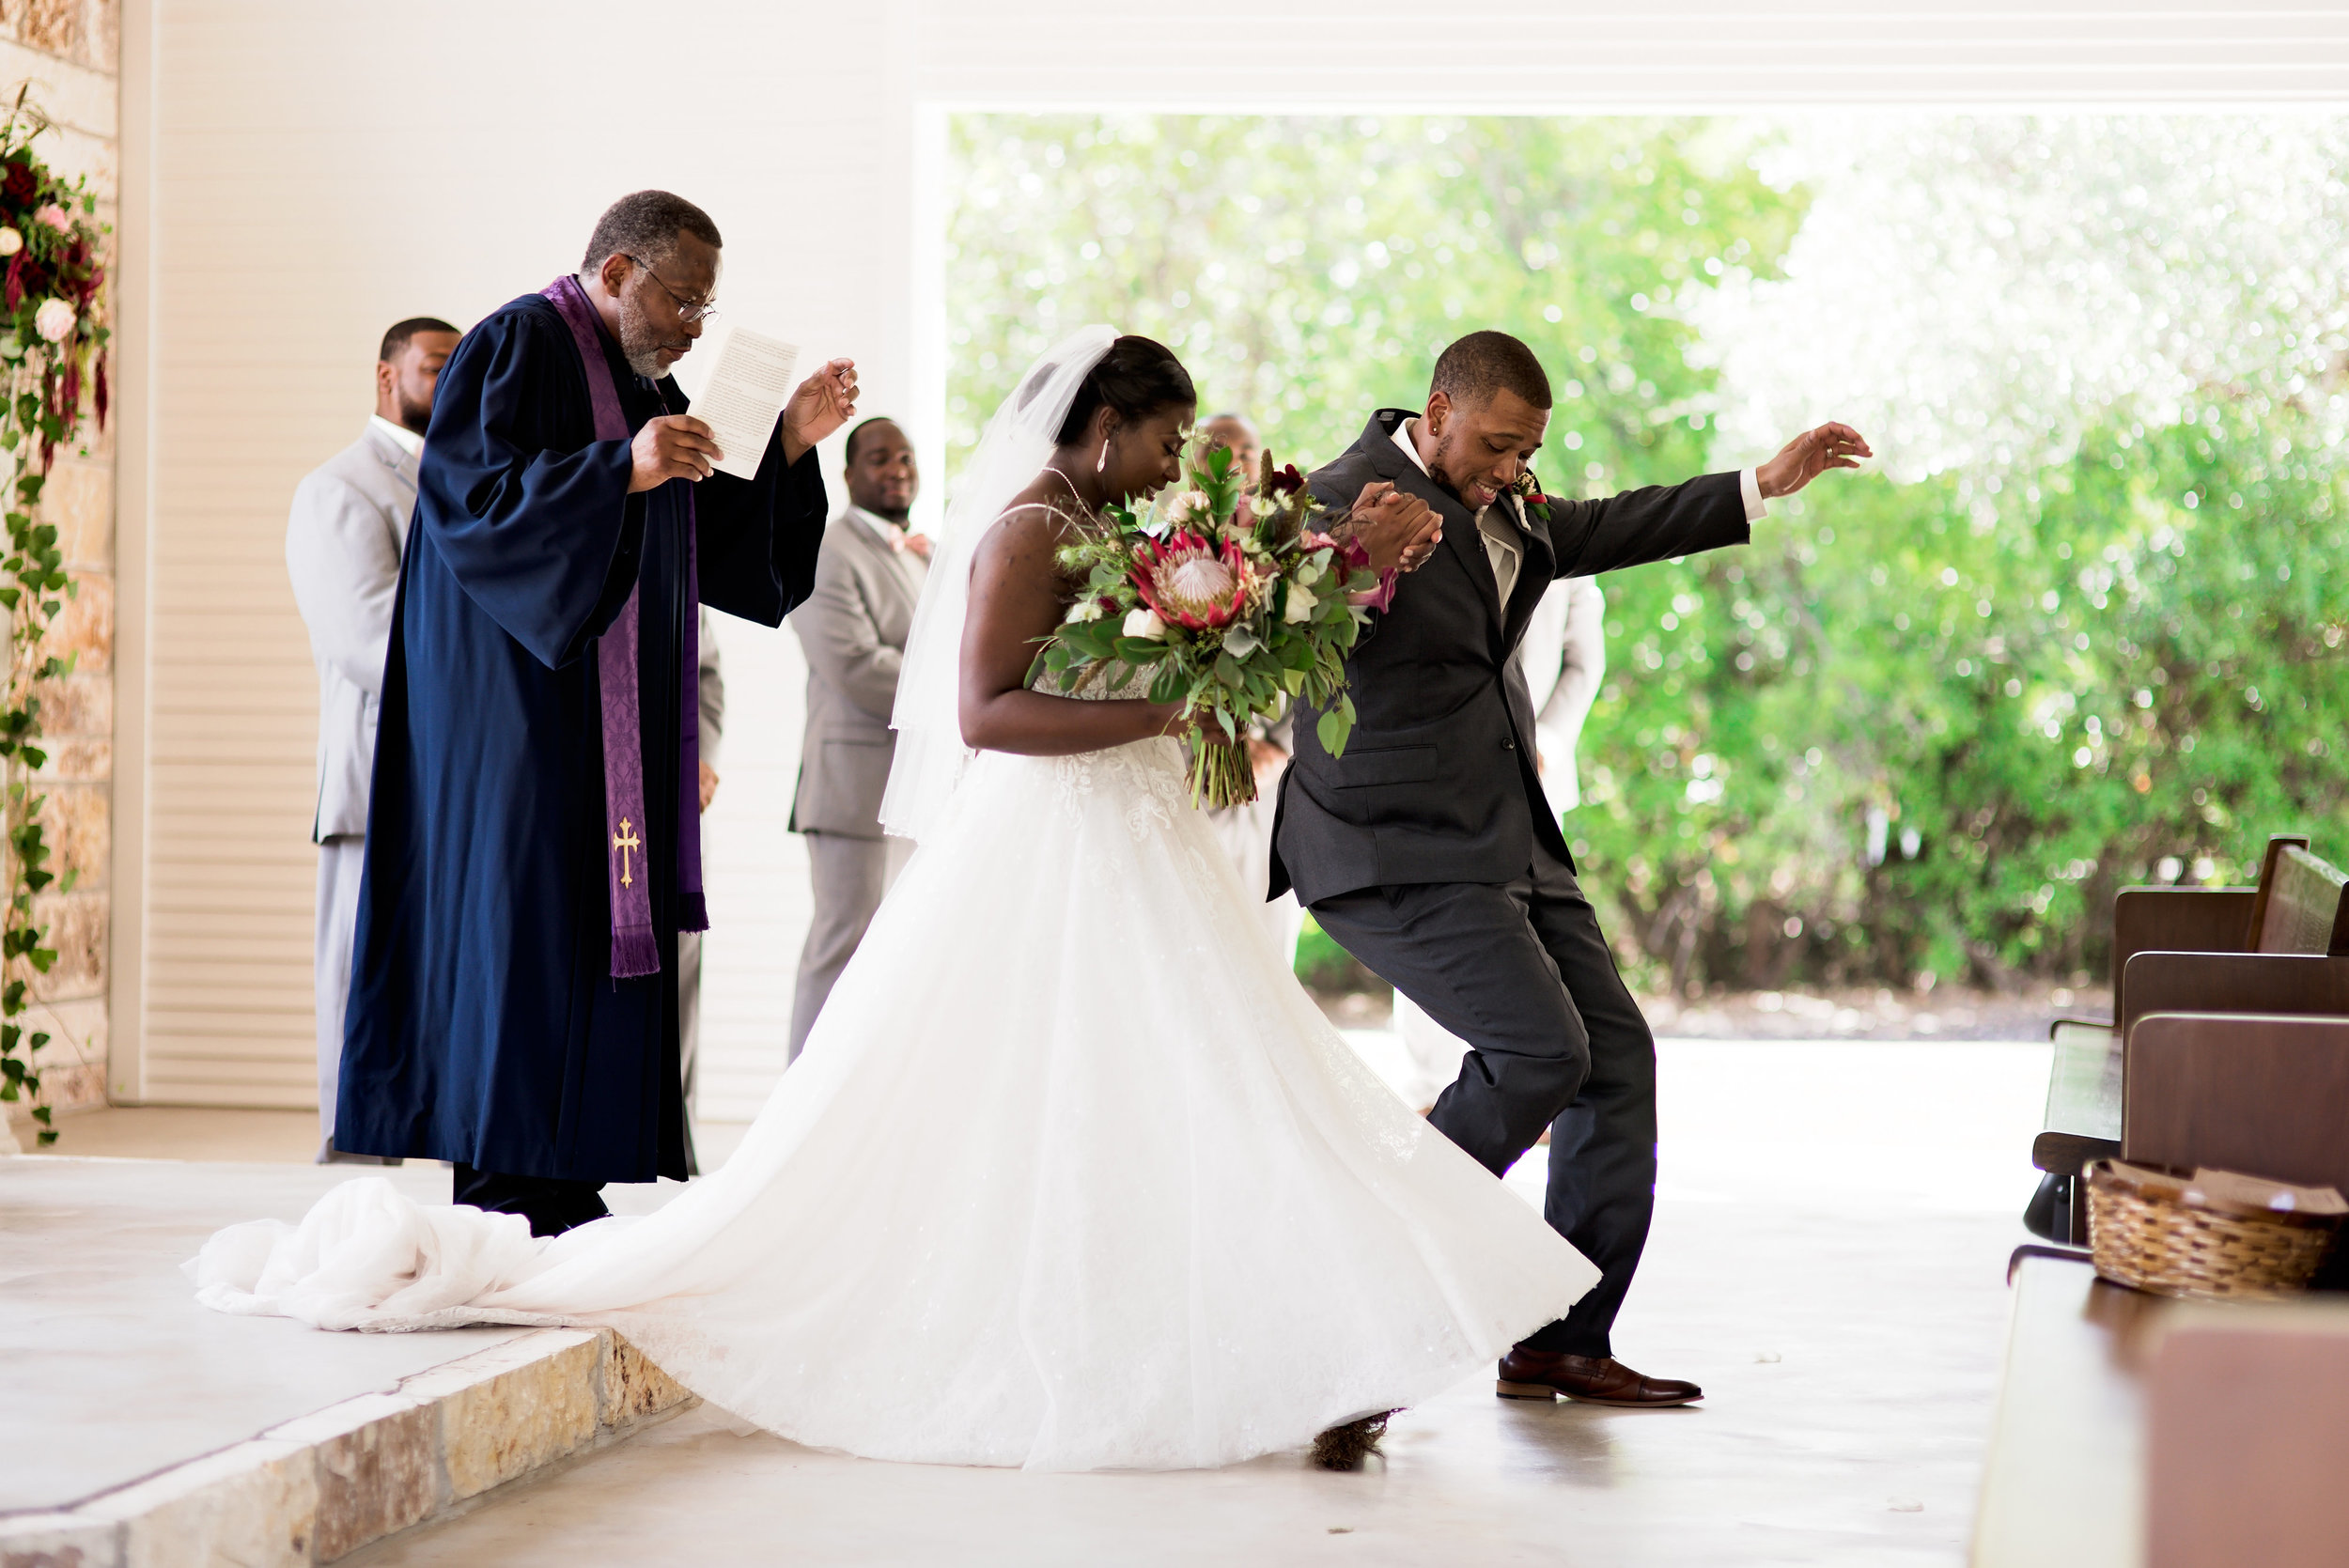 New Braunfels Wedding- Pharris Photography- Ceremony- Adrianna + Kevin- Jumping the Broom